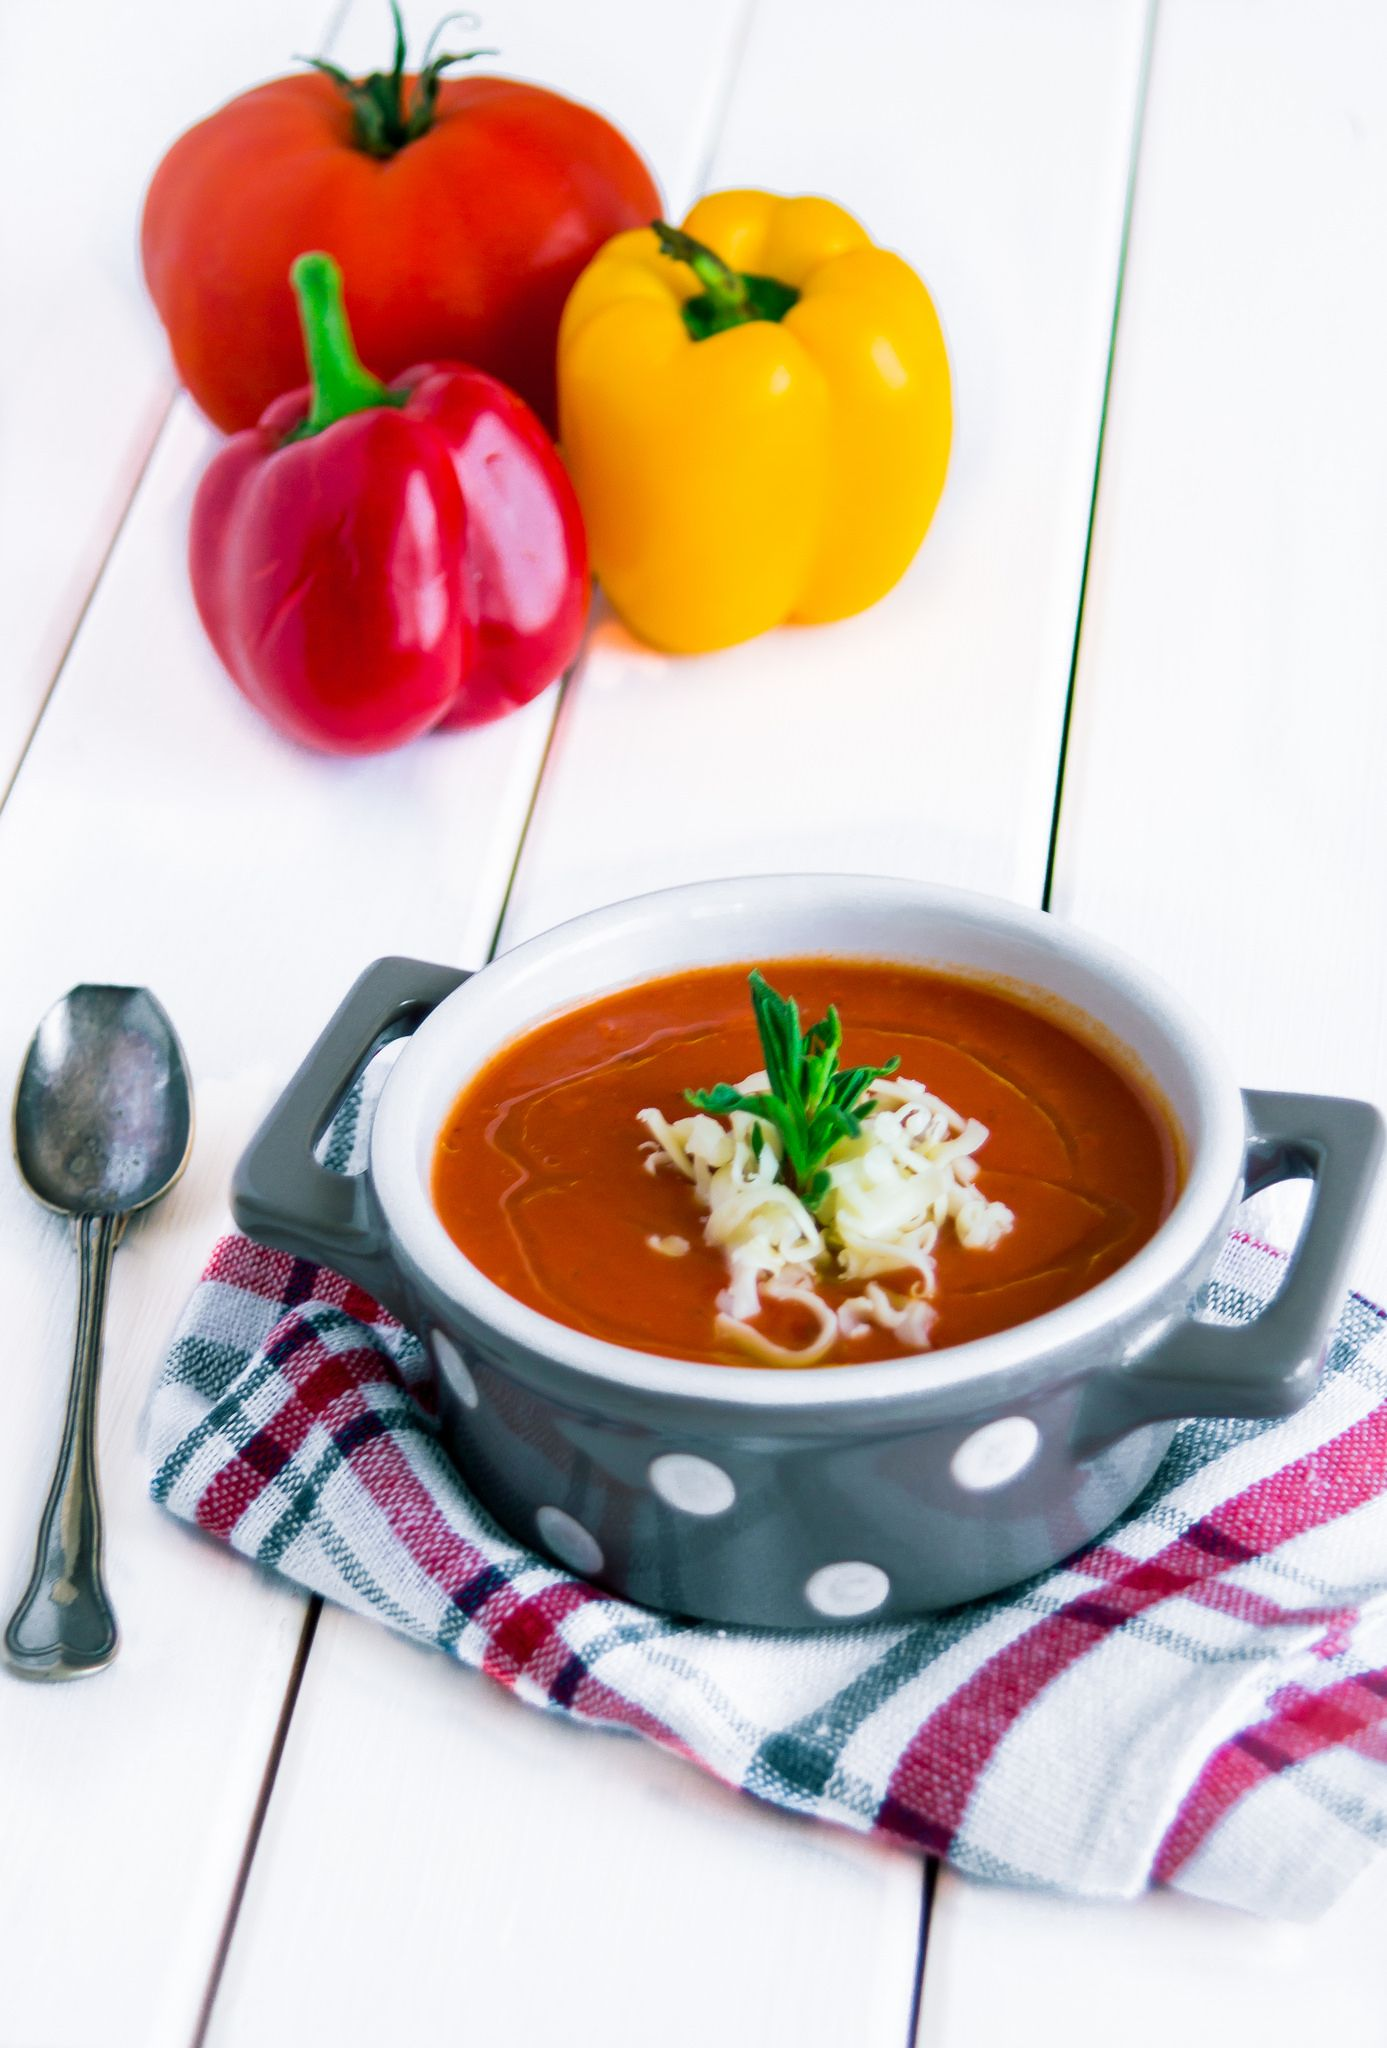 Red Pepper Tomato Soup Stuffed Peppers Food Photo Tomato Soup